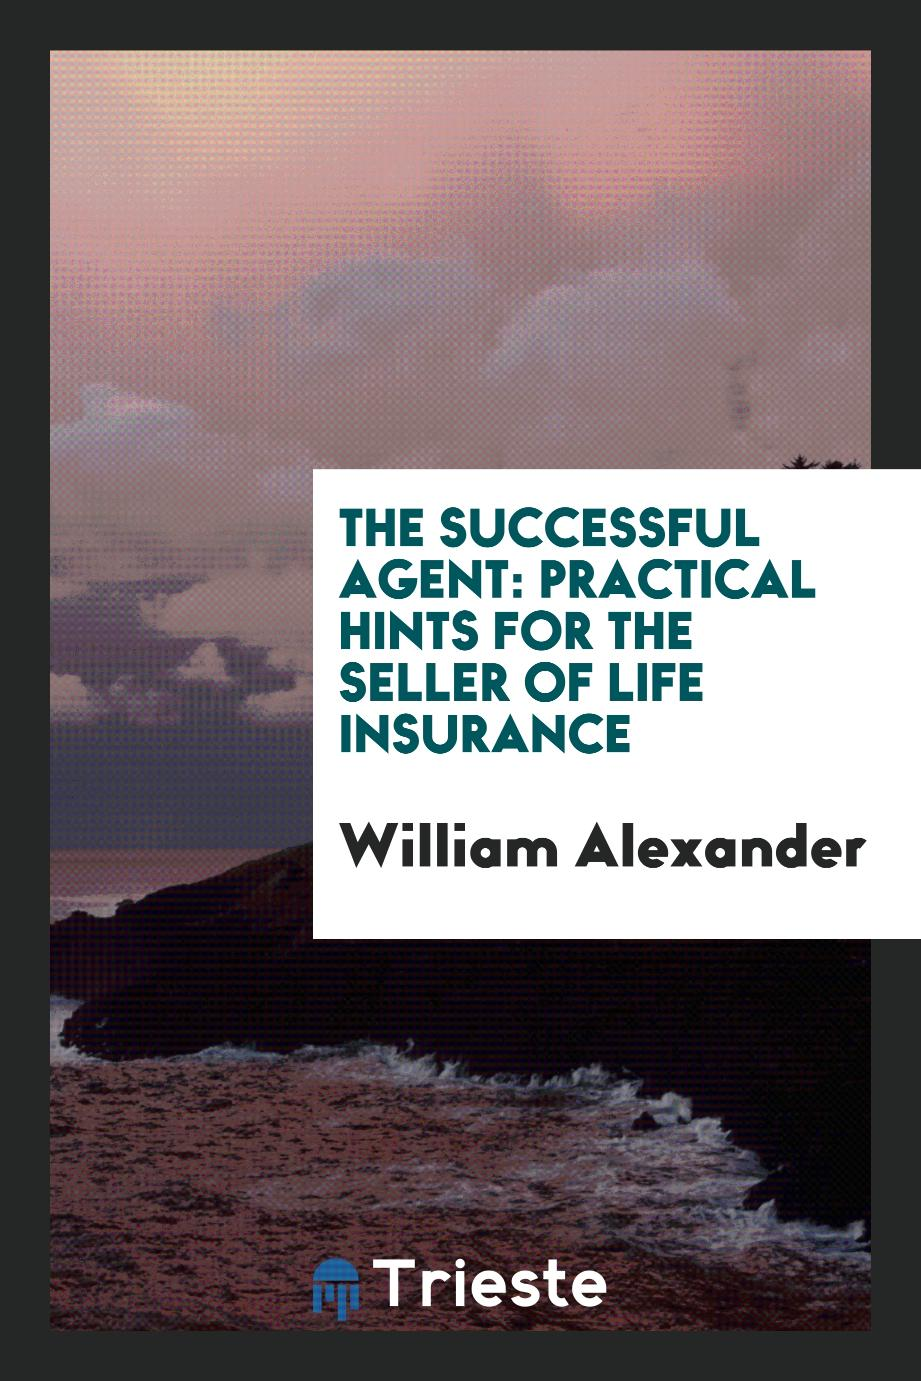 William  Alexander - The successful agent: practical hints for the seller of life insurance